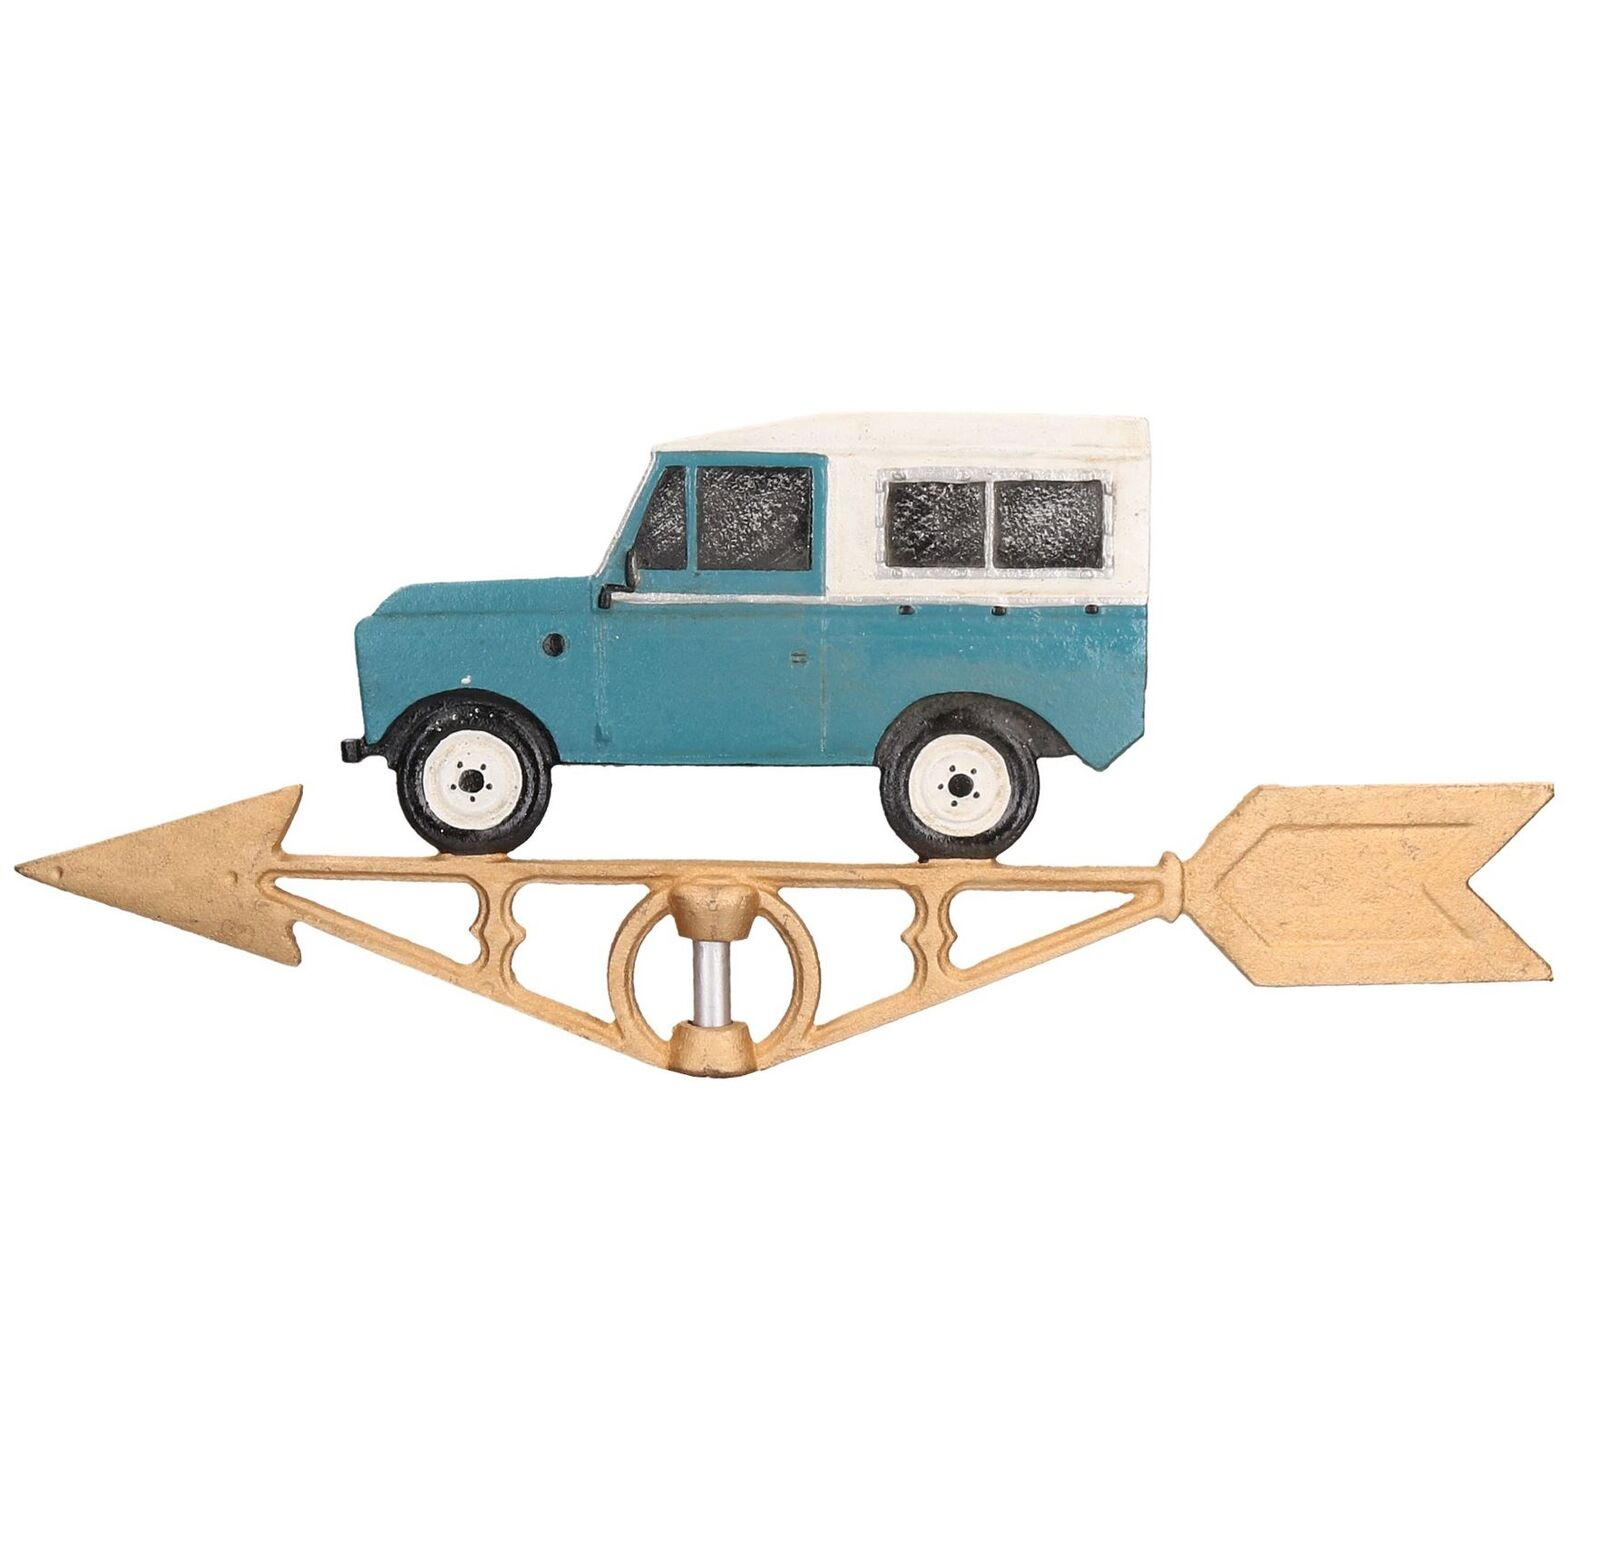 Landrover Defender Weather Vane Vain Wall Mount Gold House Roof Cast Iron